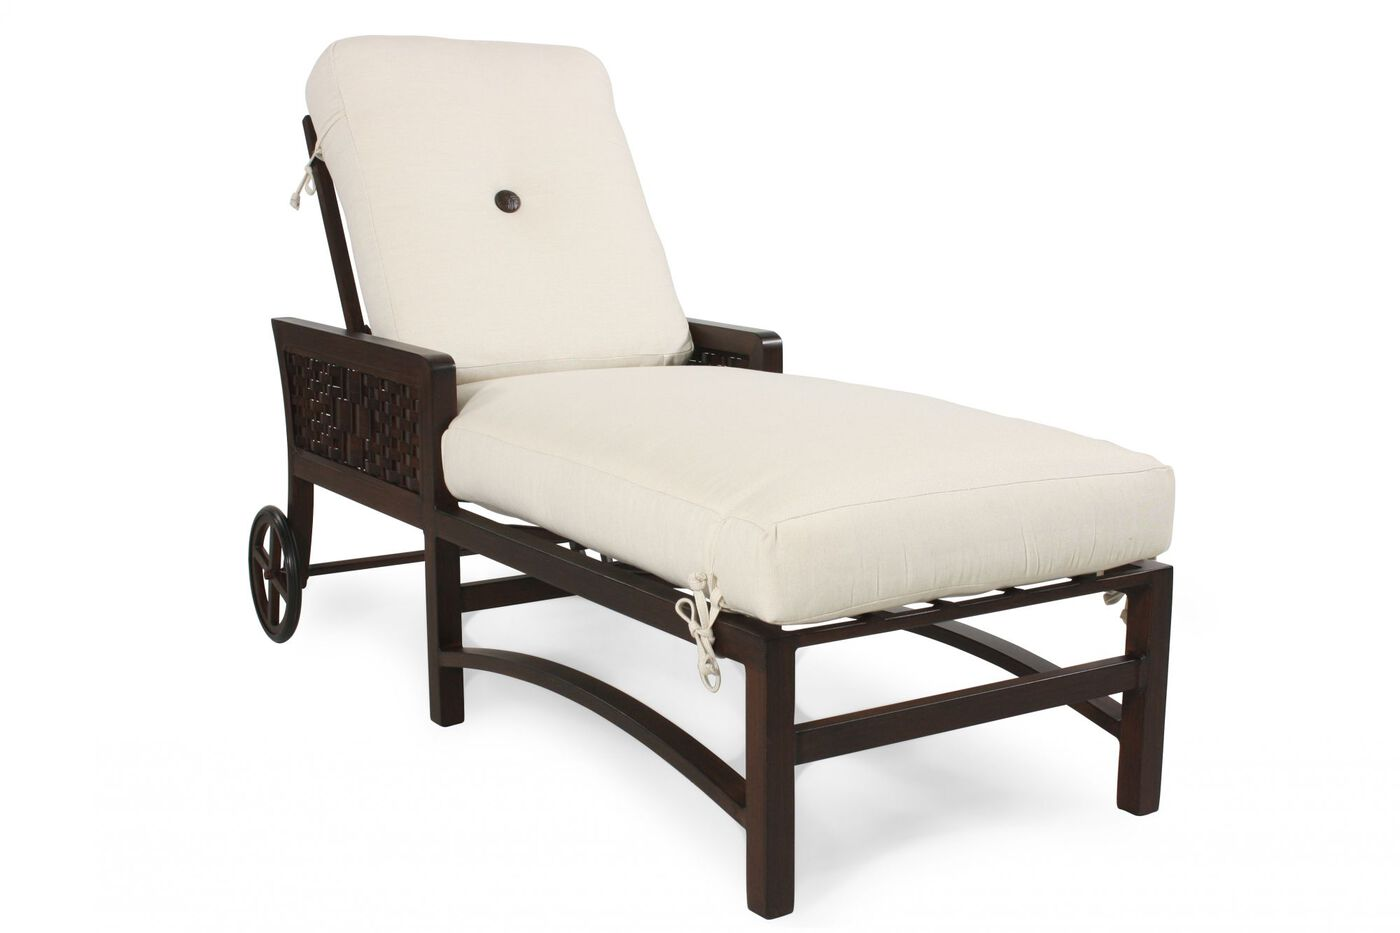 30 inspirational mathis brothers patio furniture patio for Agio heritage chaise lounge